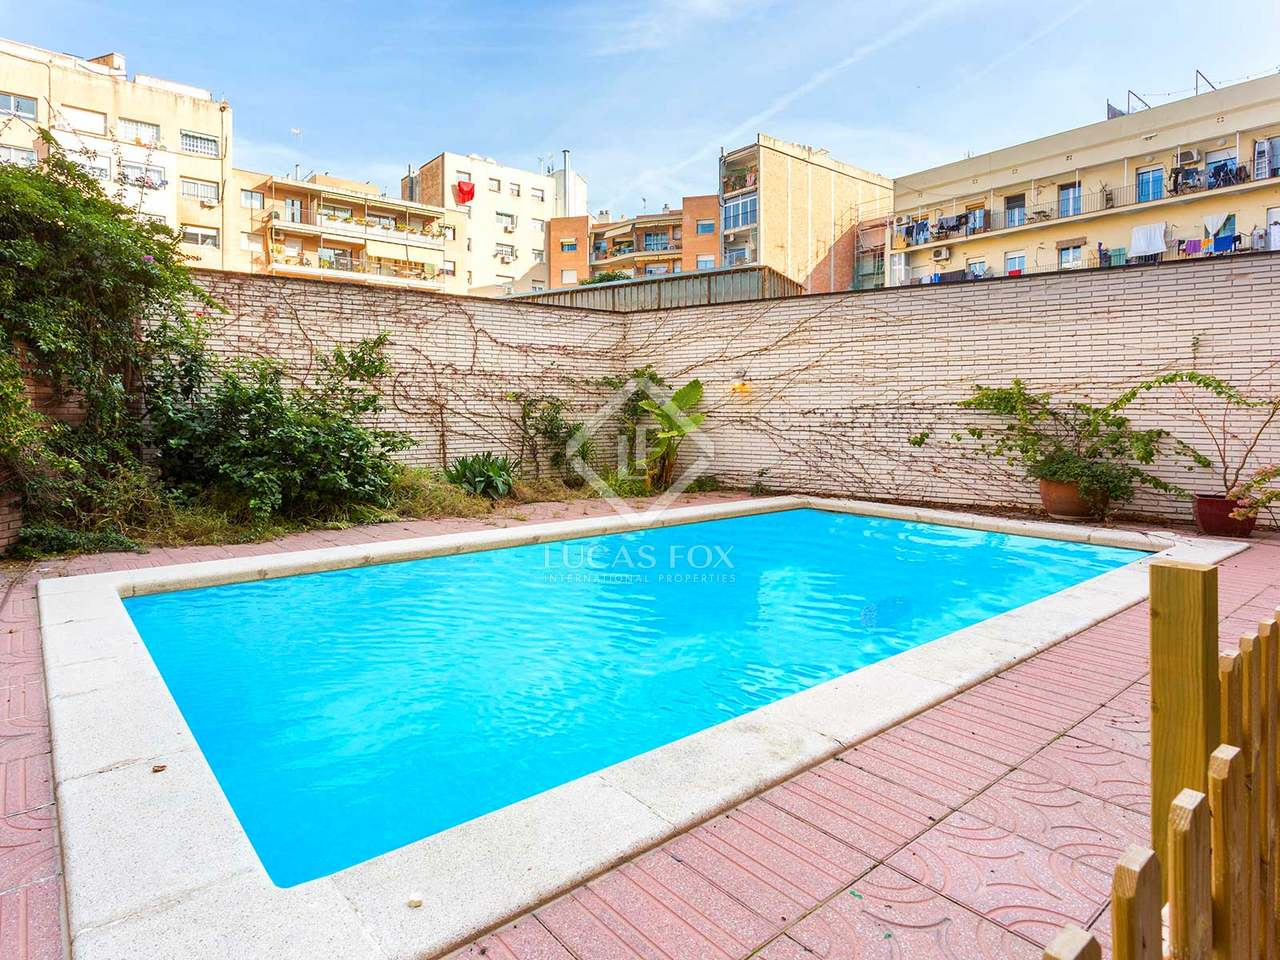 2 bedroom apartment to rent on calle marina barcelona - Calle marina barcelona ...